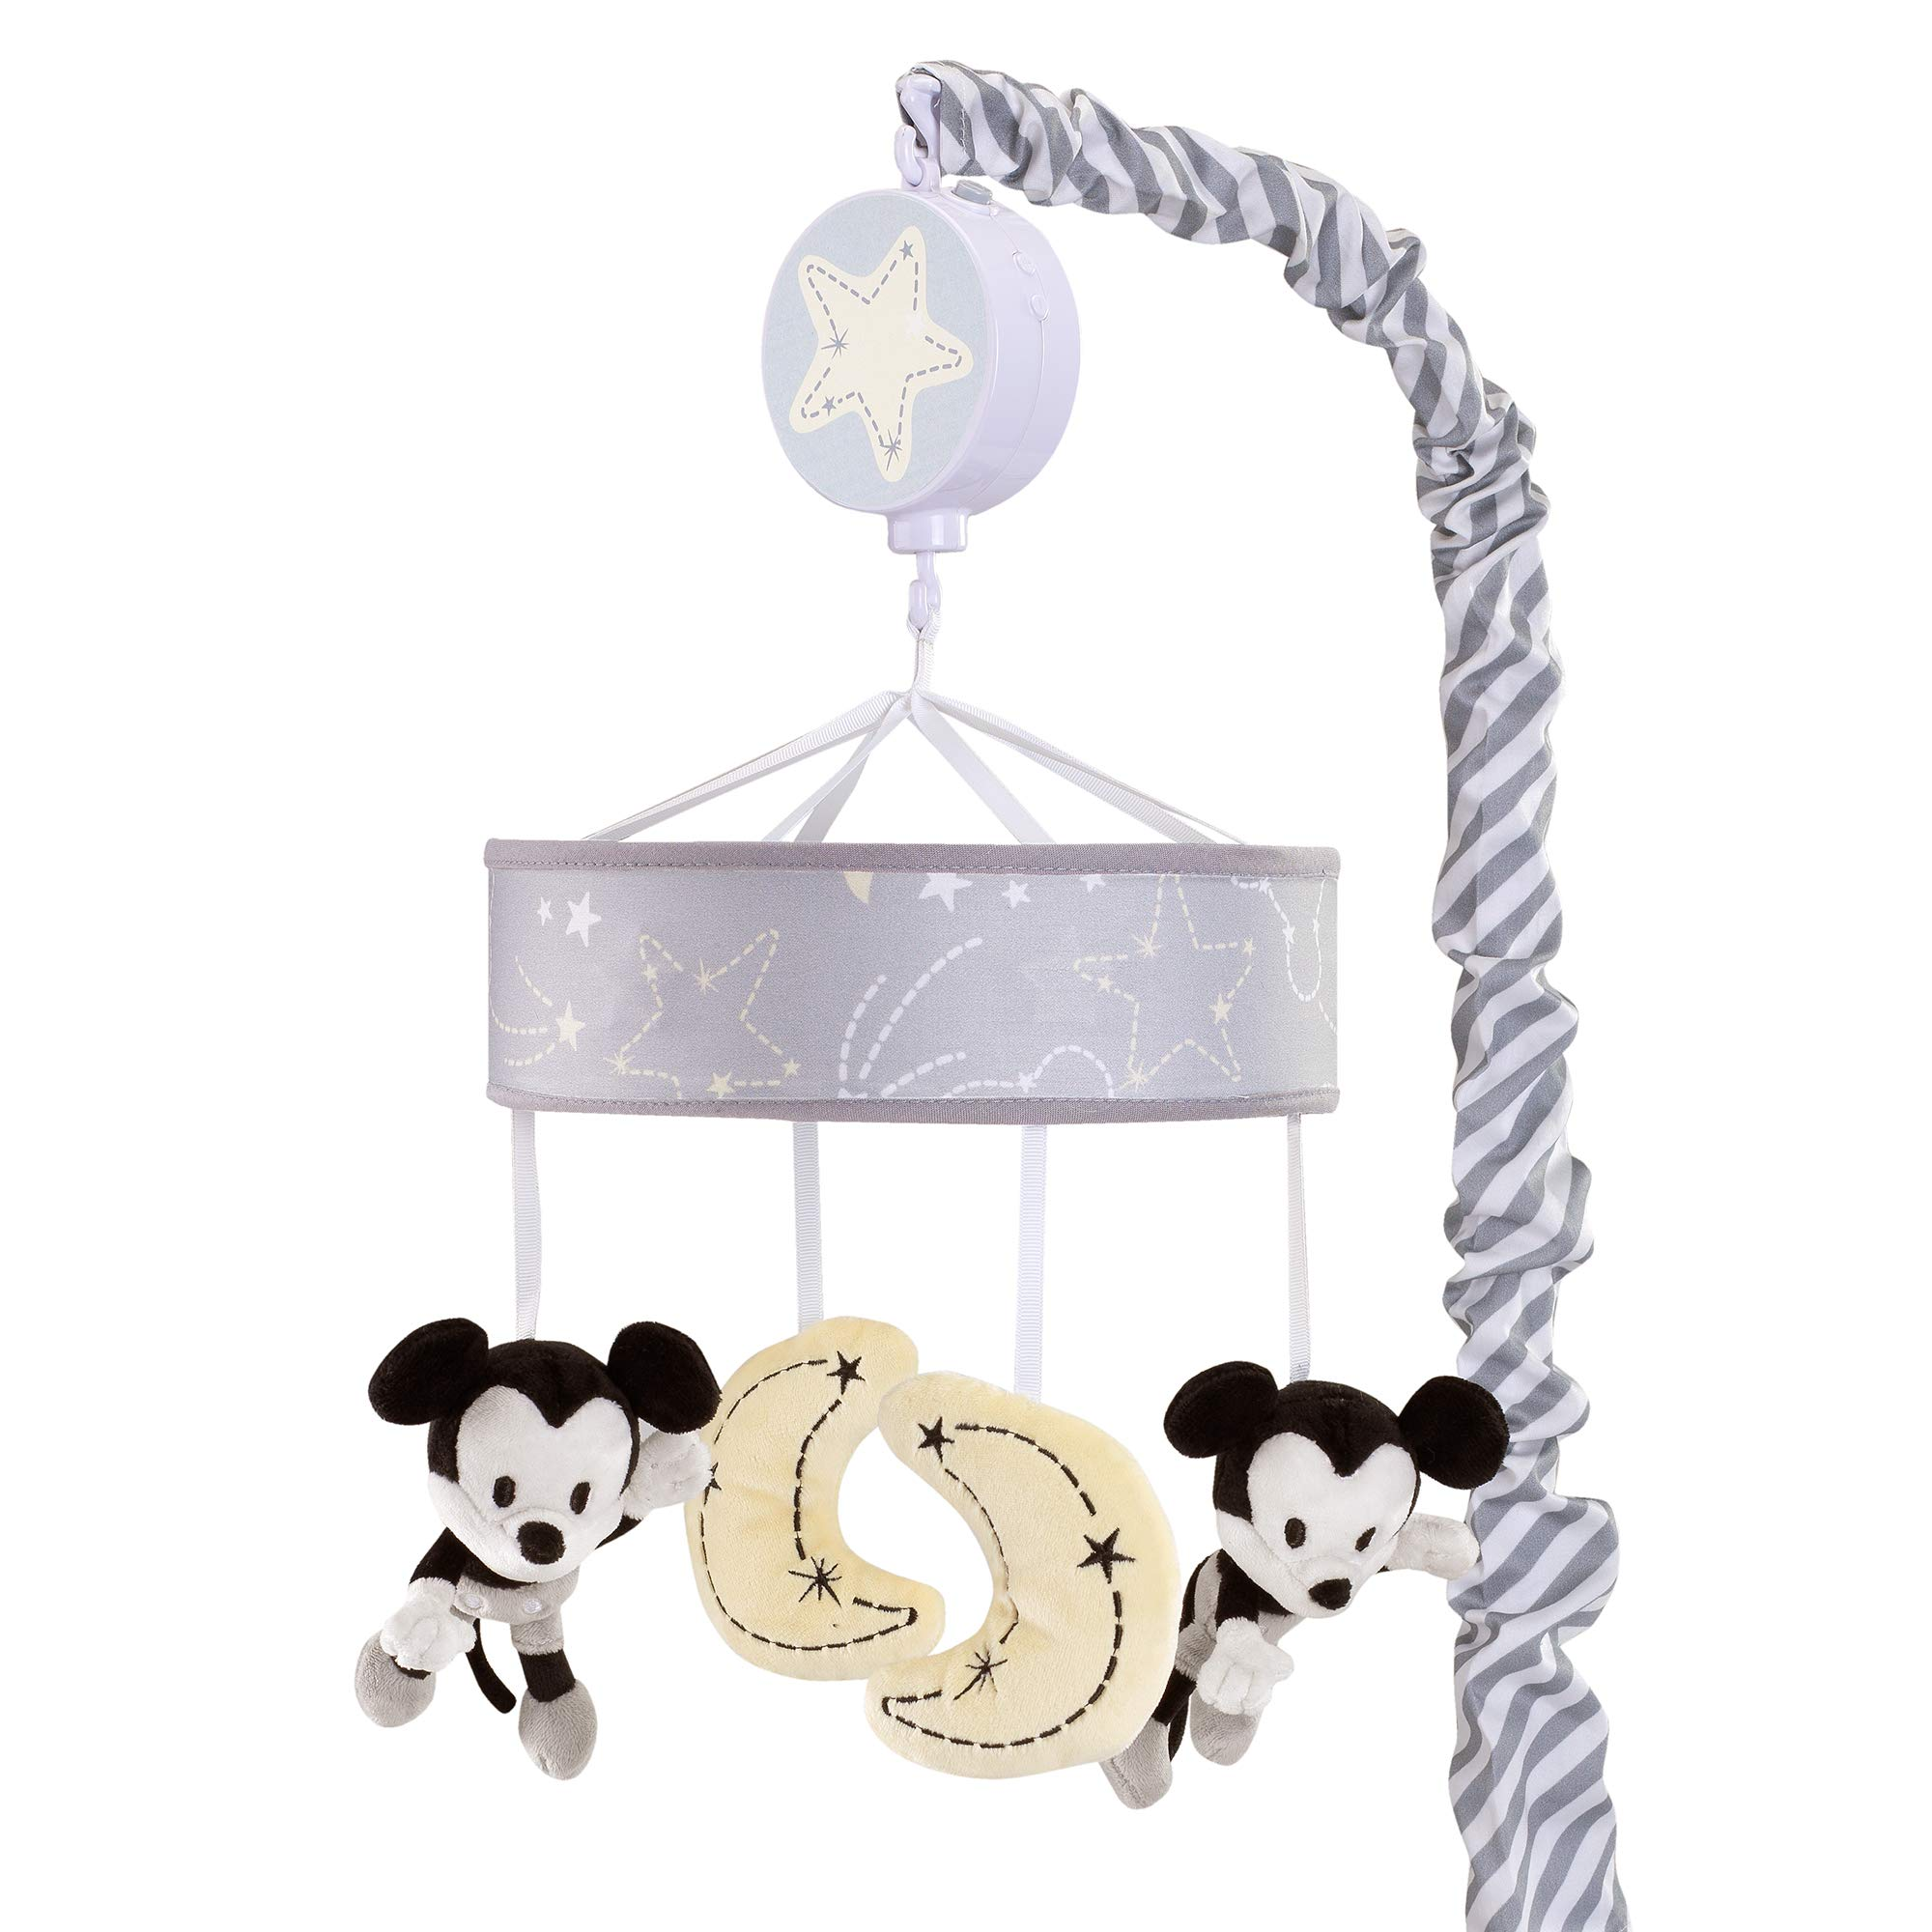 Lambs & Ivy Disney Baby Mickey Mouse Musical Baby Crib Mobile, Gray/Yellow by Lambs & Ivy